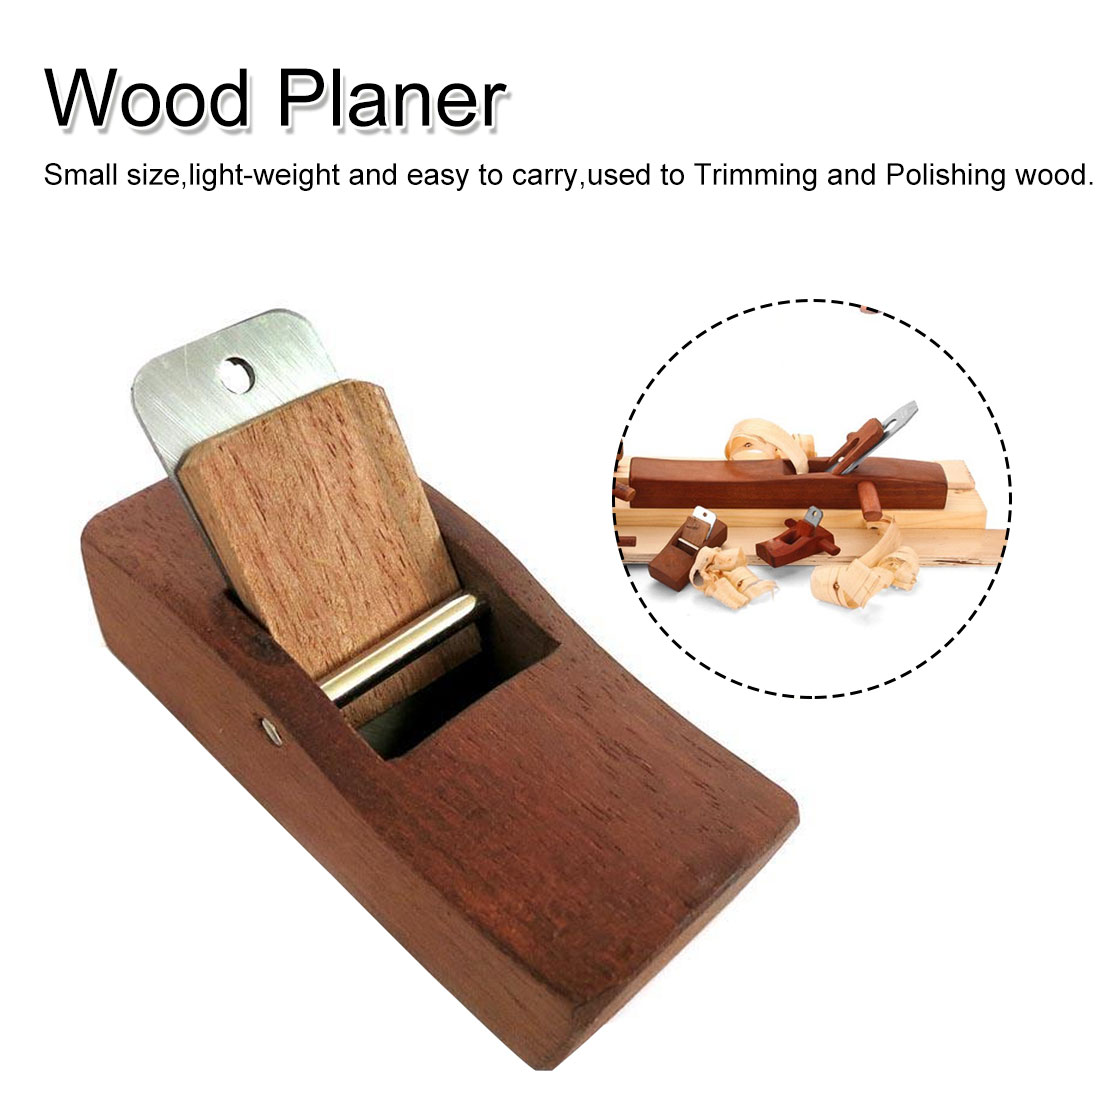 Mini Planer Carpenter Hand Wood Planing Manual Trimming DIY Tool Woodworking Craft For Home Garden Carpenter Tool